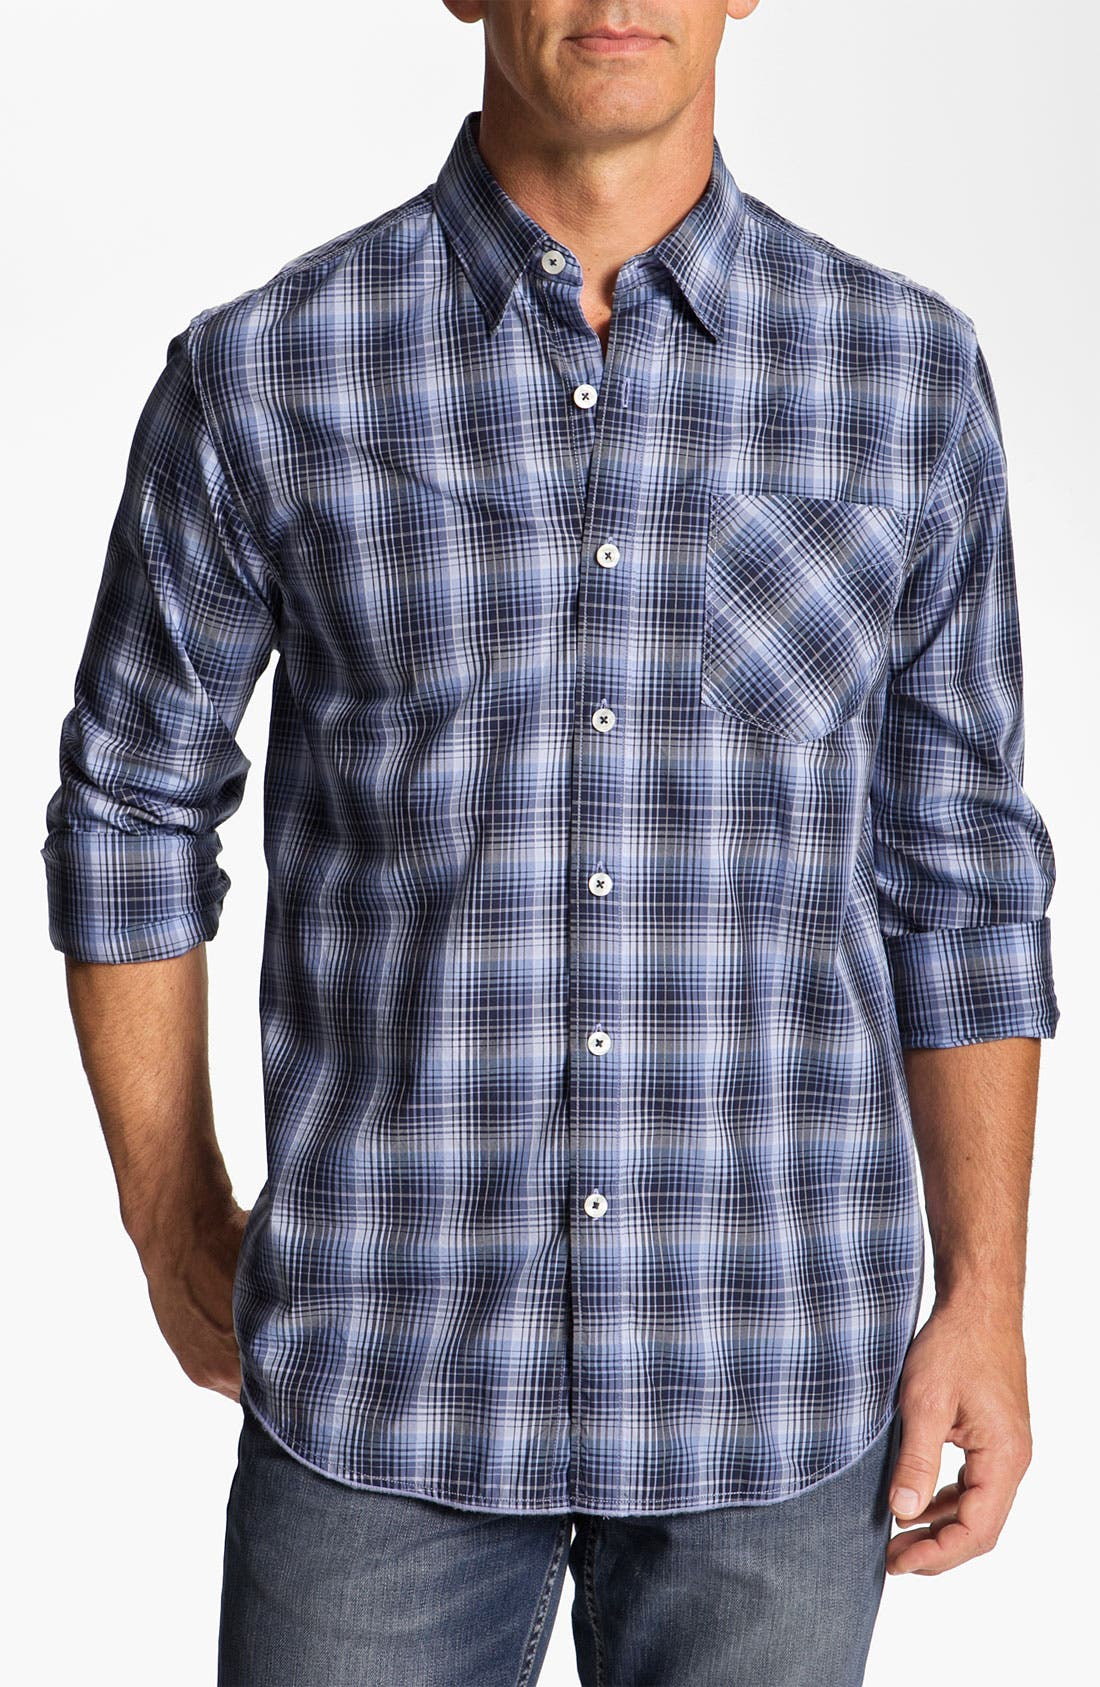 Alternate Image 1 Selected - Tommy Bahama Denim 'Phan-Tastic Plaid' Sport Shirt